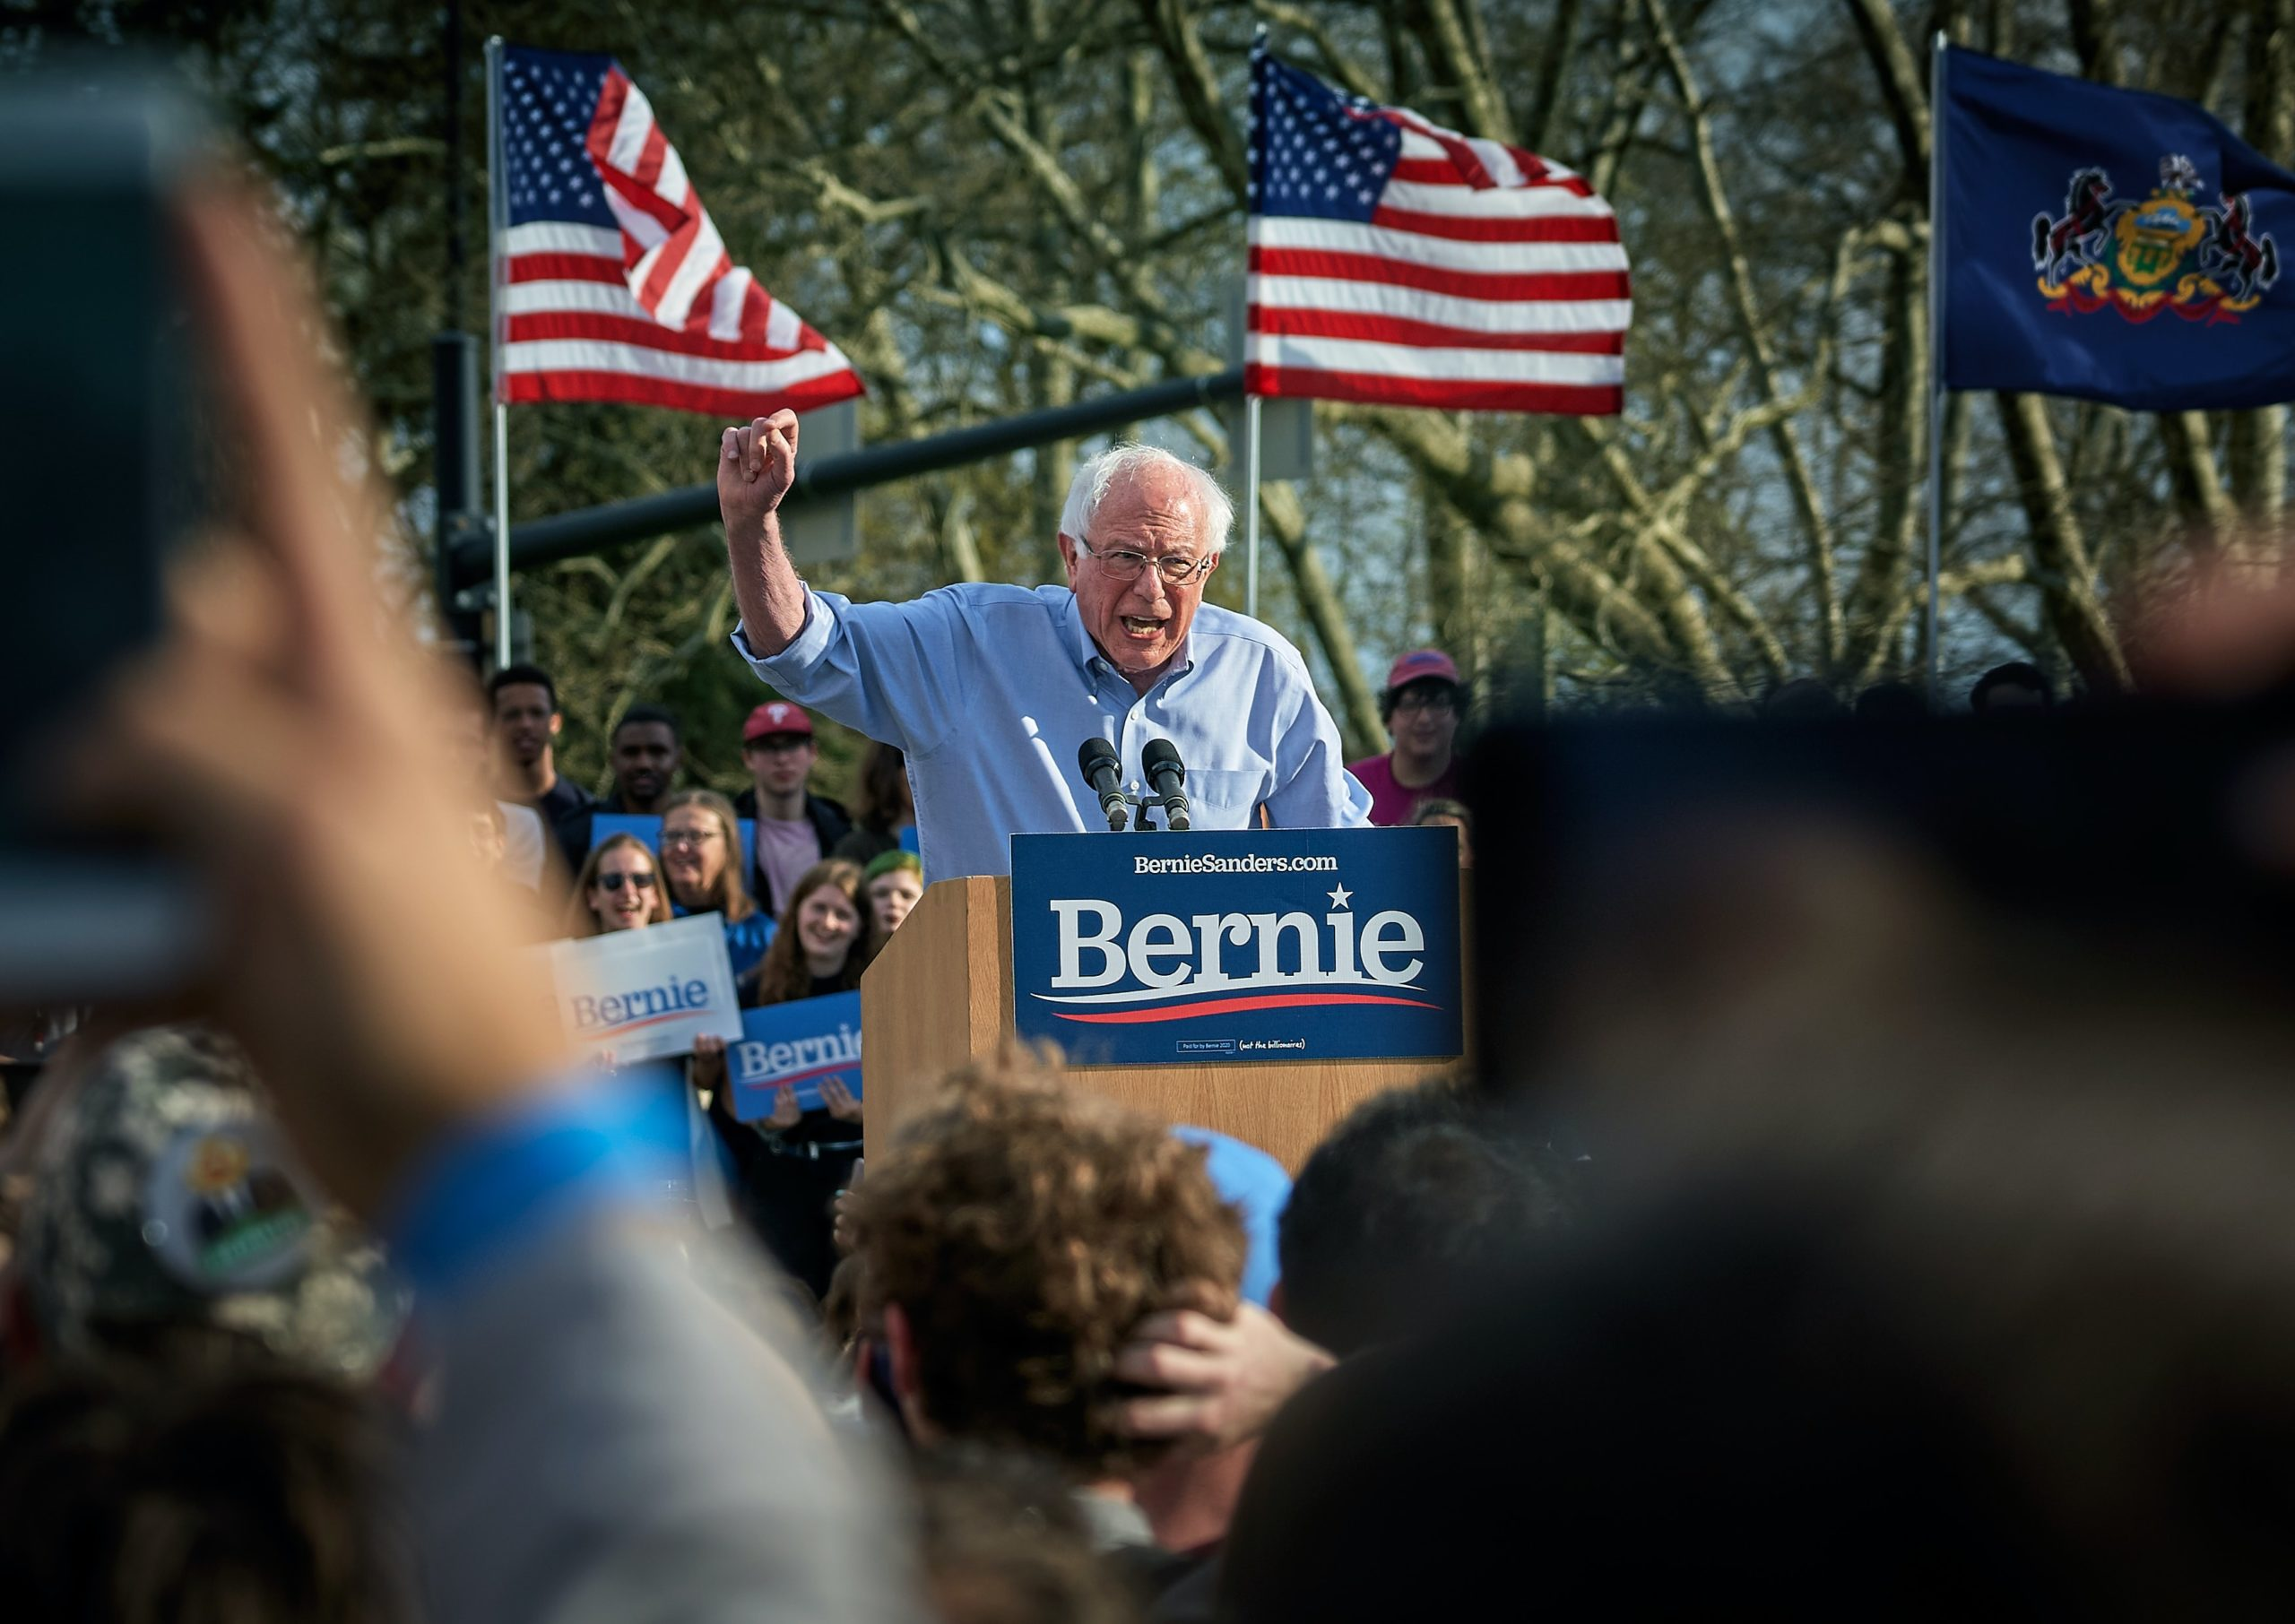 What Does Bernie Sander's Exit Mean For An Imperative Green New Deal?